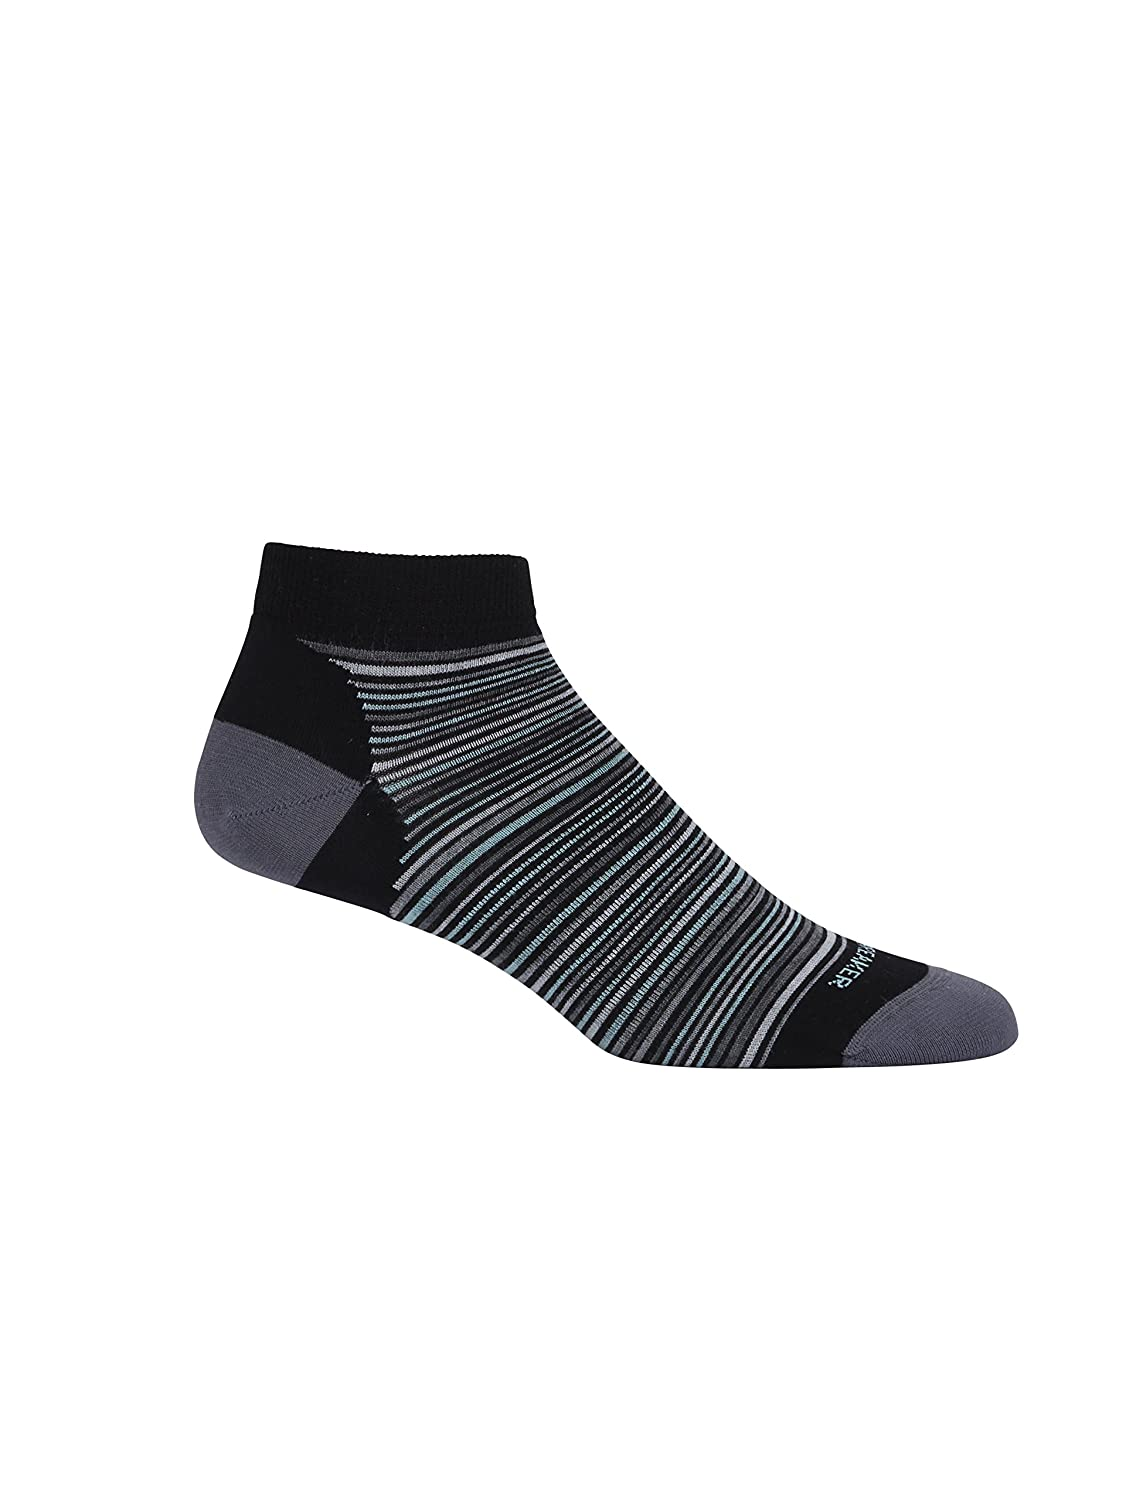 Icebreaker Women's Lifestyle Ultra Light Low Cut Multi-Mini Stripe Socks